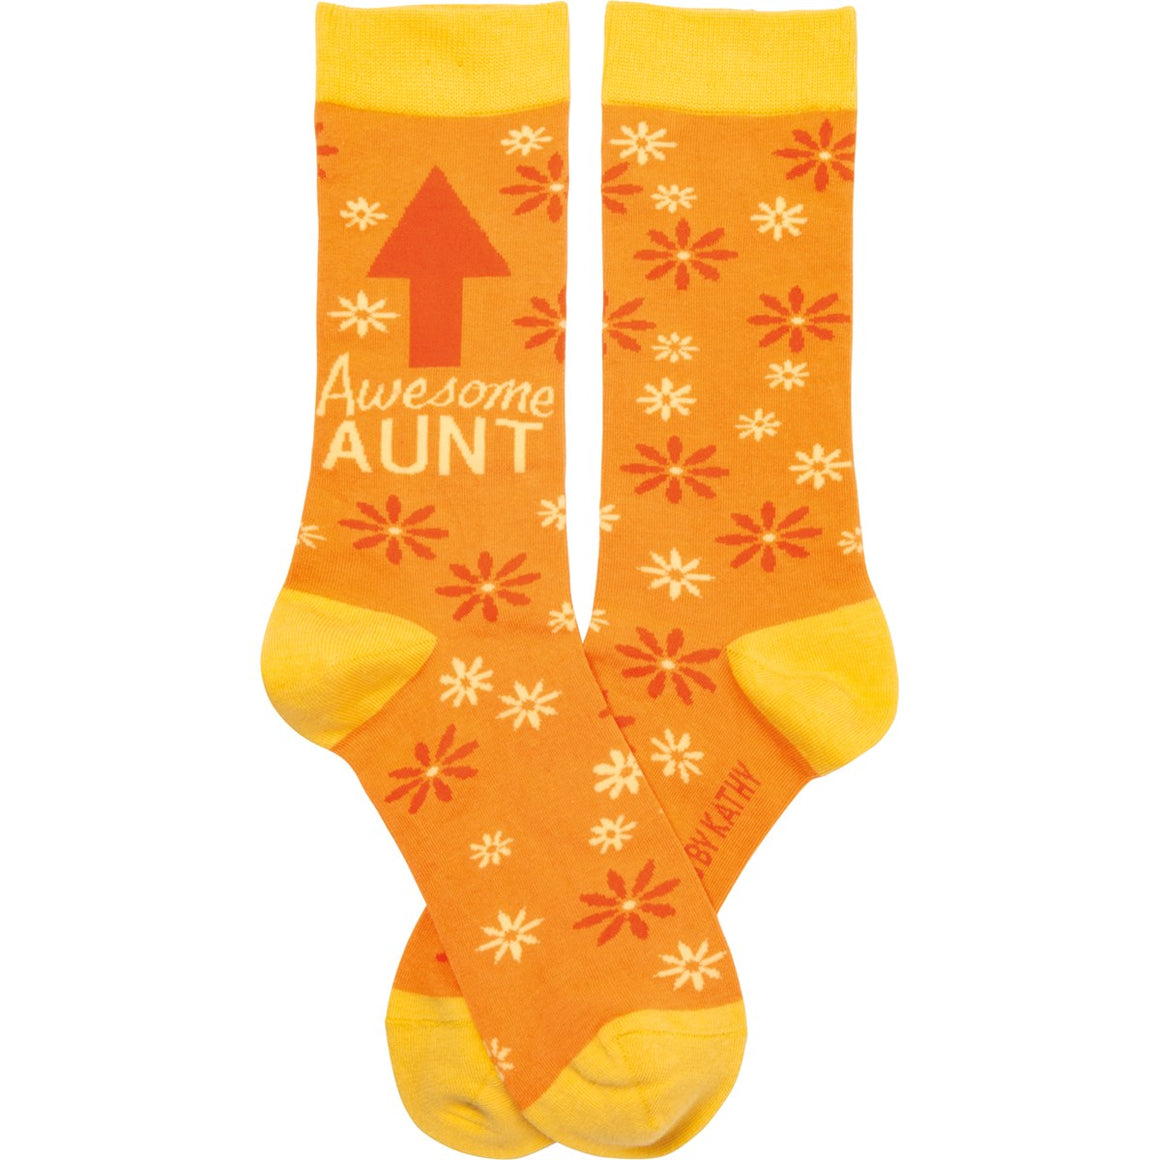 Awesome Aunt Socks